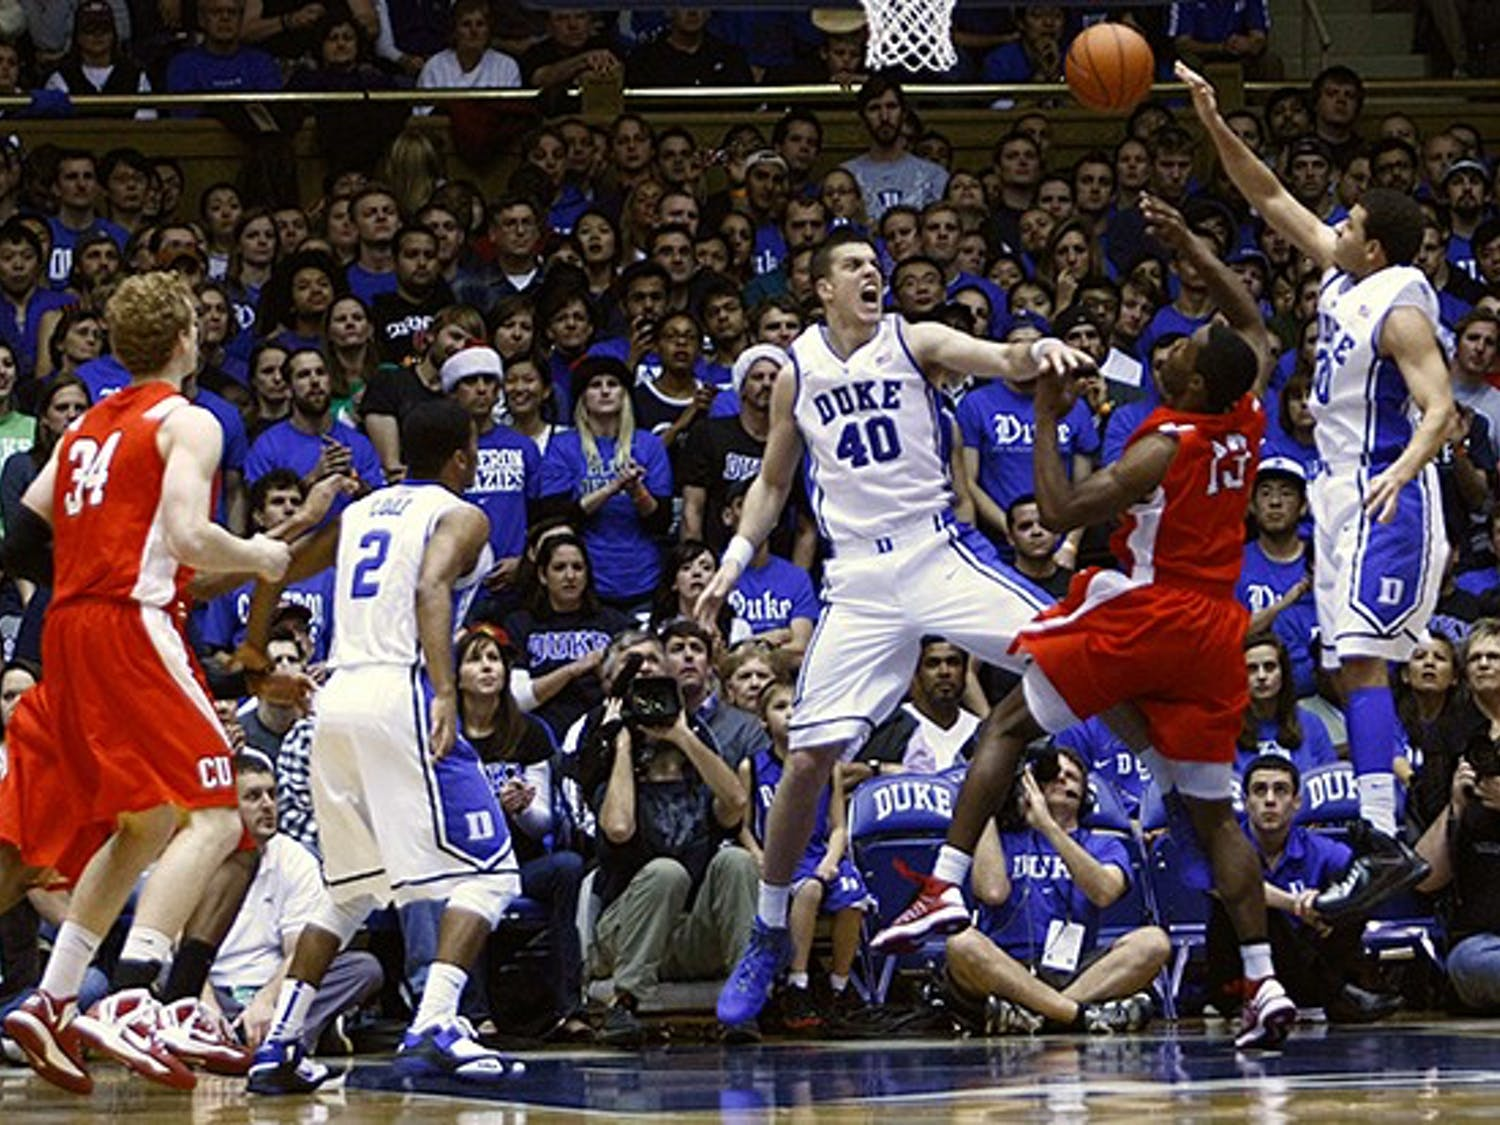 Marshall Plumlee made his Duke debut against Cornell and recorded a rebound and a block, but was limited after suffering a foot sprain.